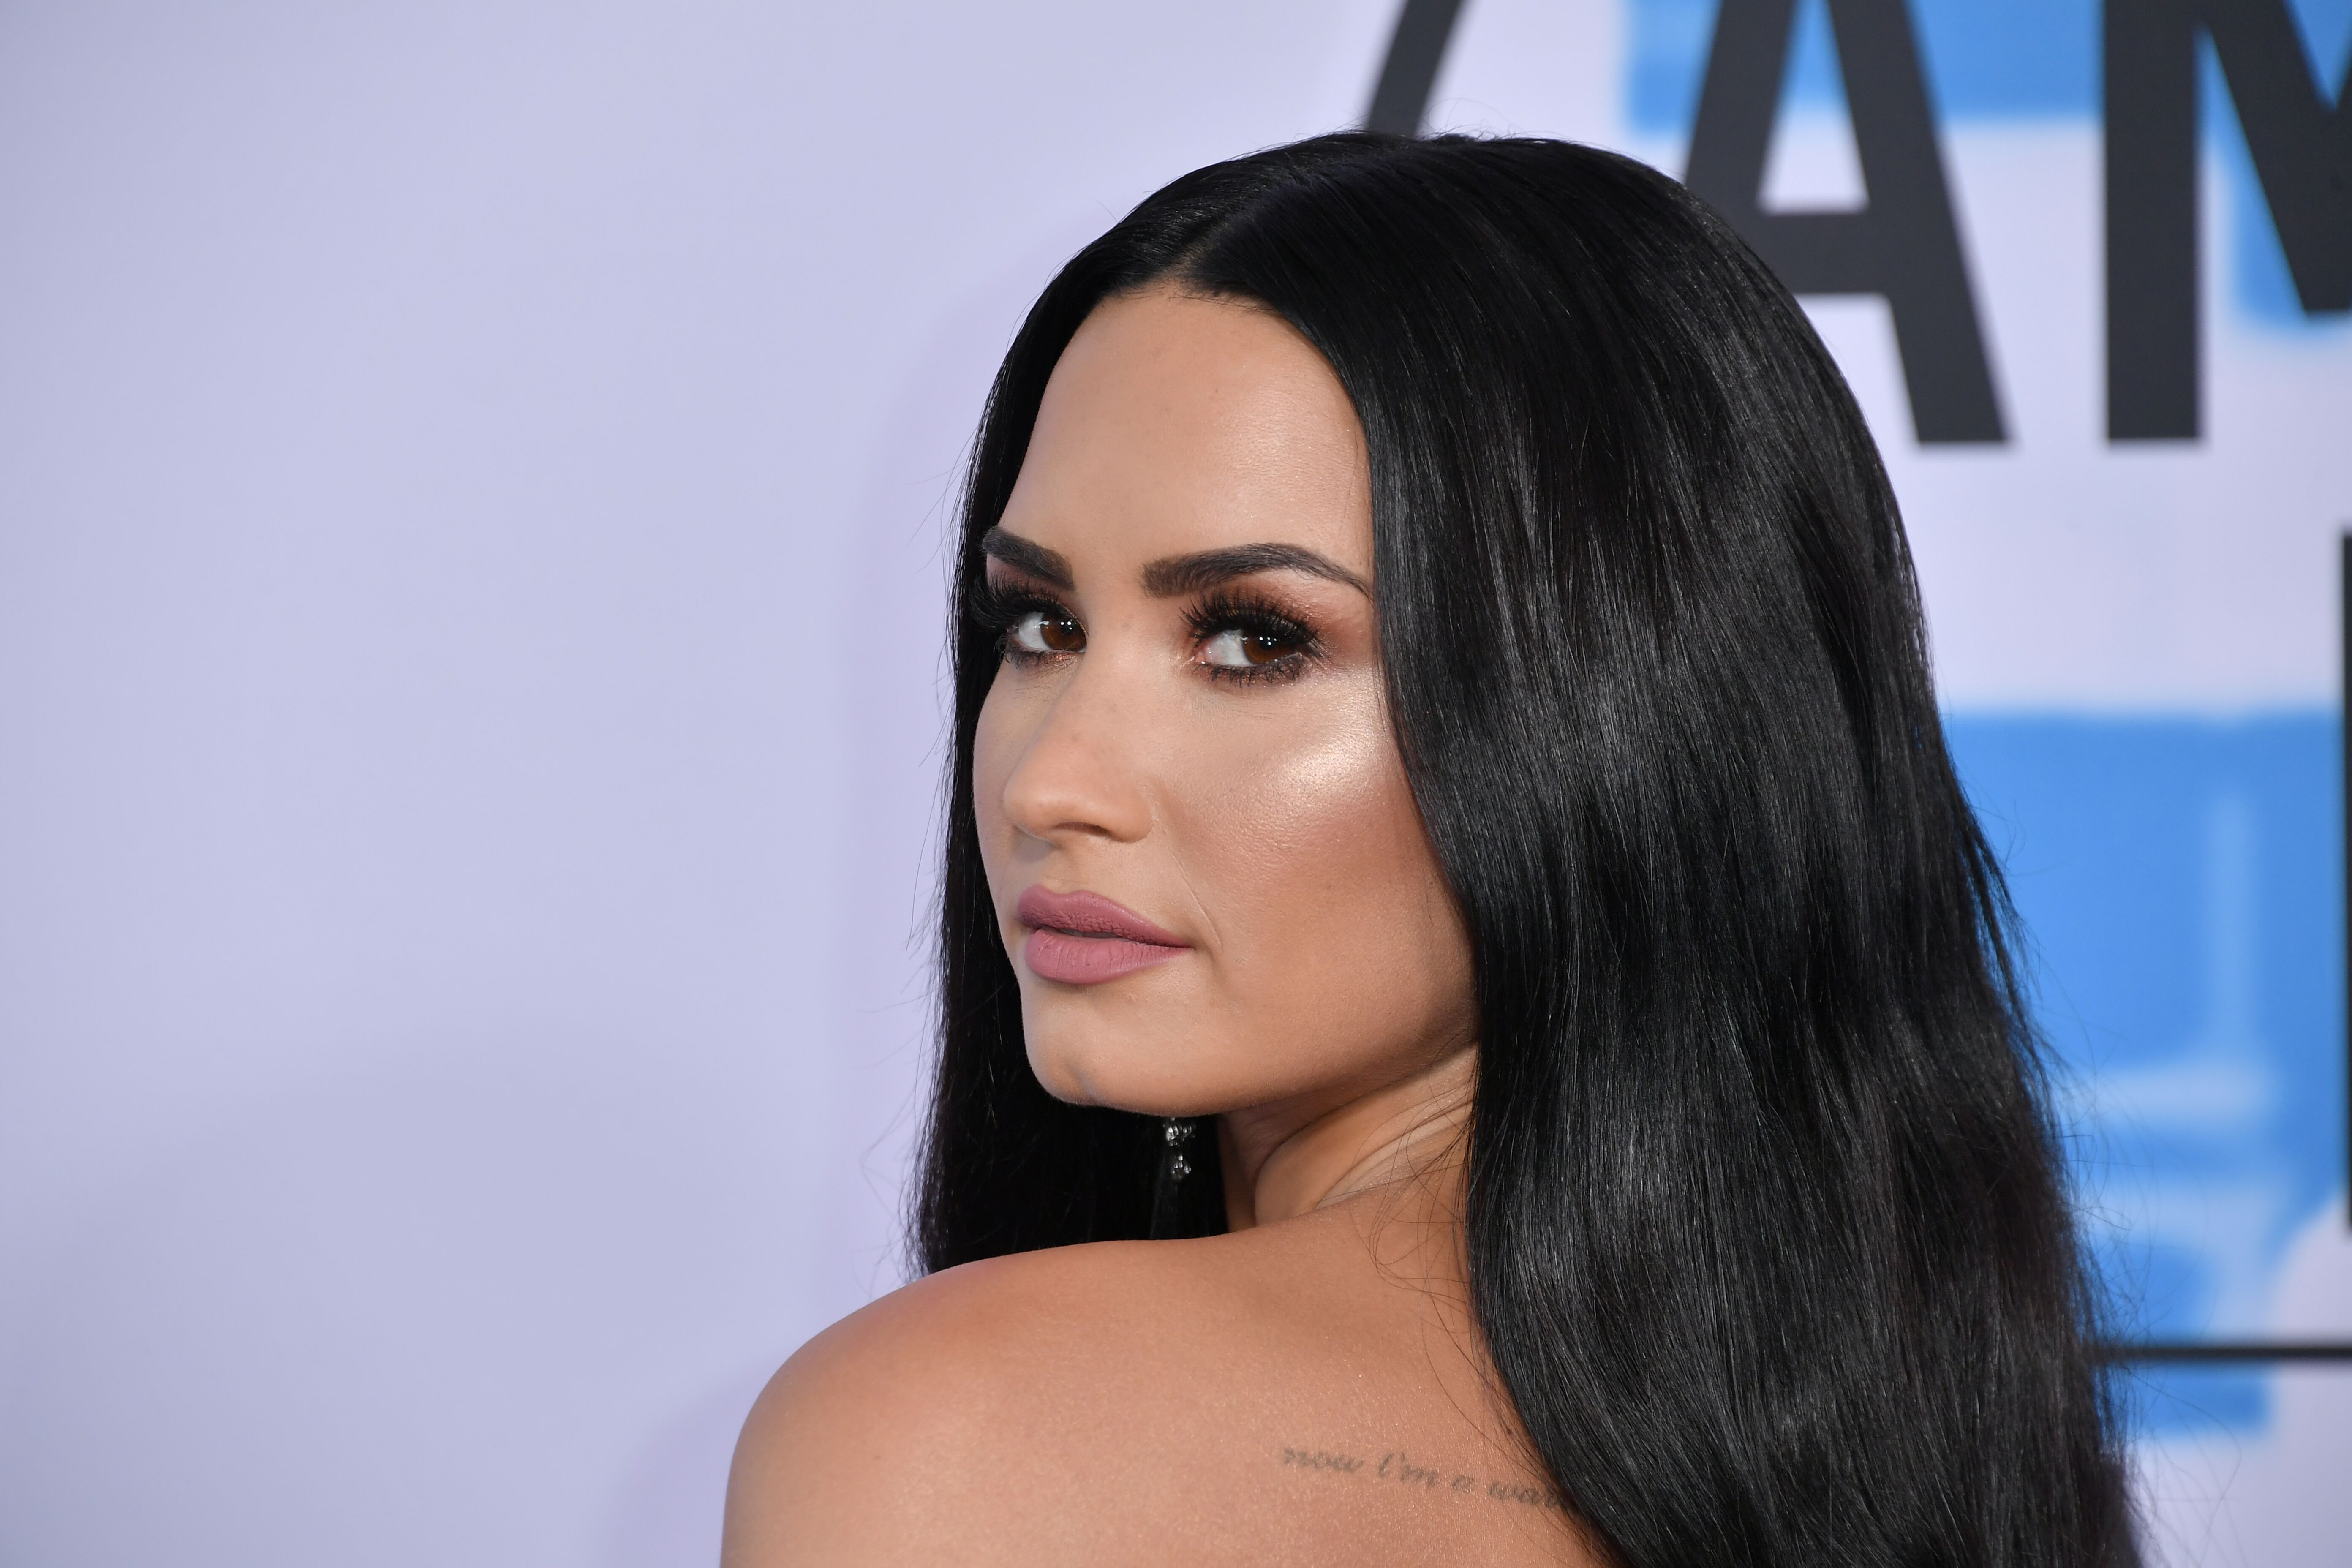 Demi Lovato attends the 2017 American Music Awards in Los Angeles | Source: Getty Images